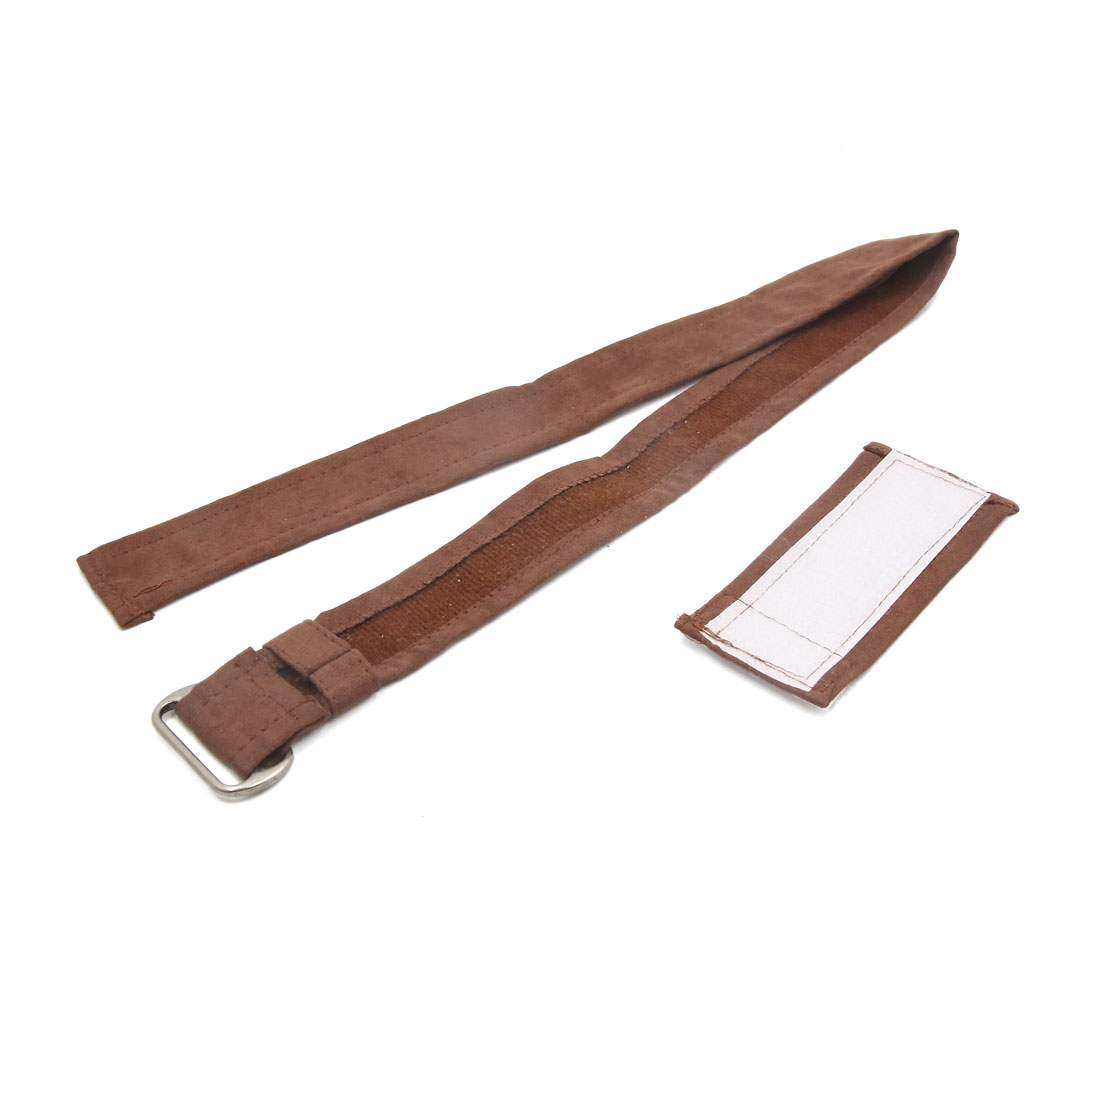 Brown Memory Foam Padding Car Seat Headrest Pillow Neck Rest Support Cushion Pad - image 2 of 4